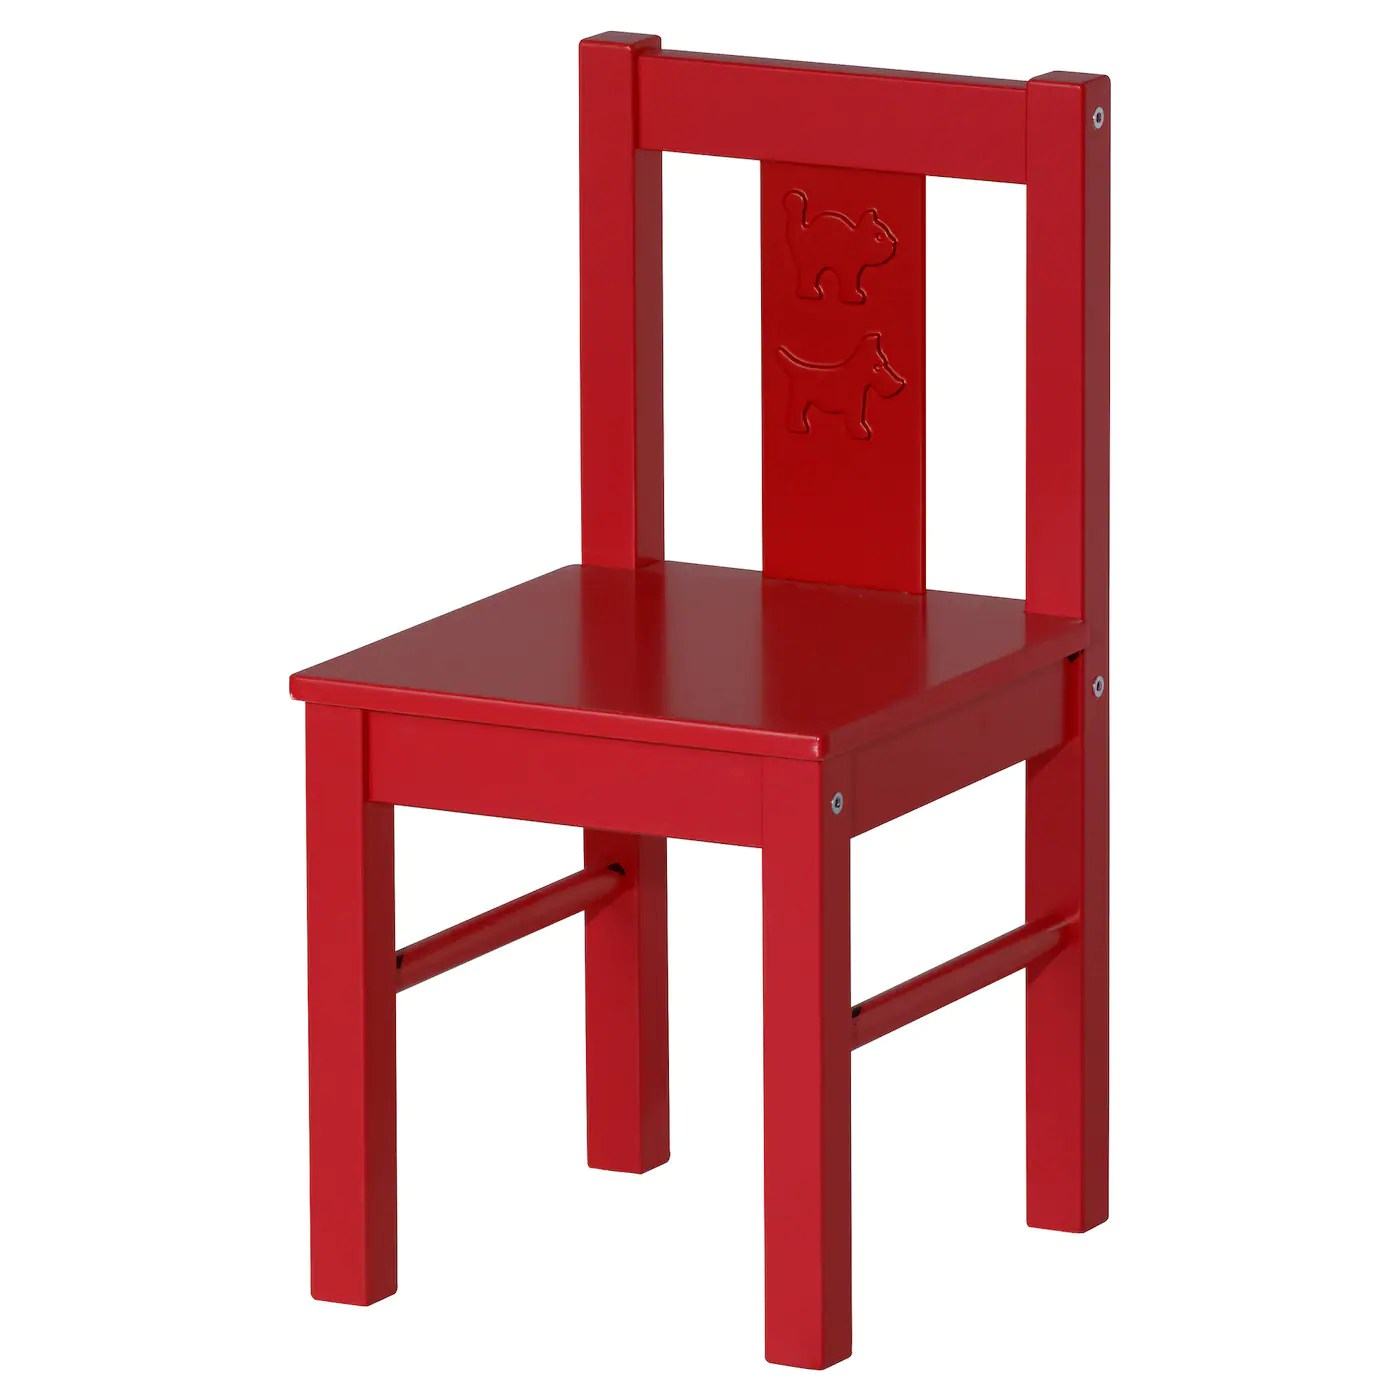 Small Kids Chair Kritter Children 39s Chair Red Ikea